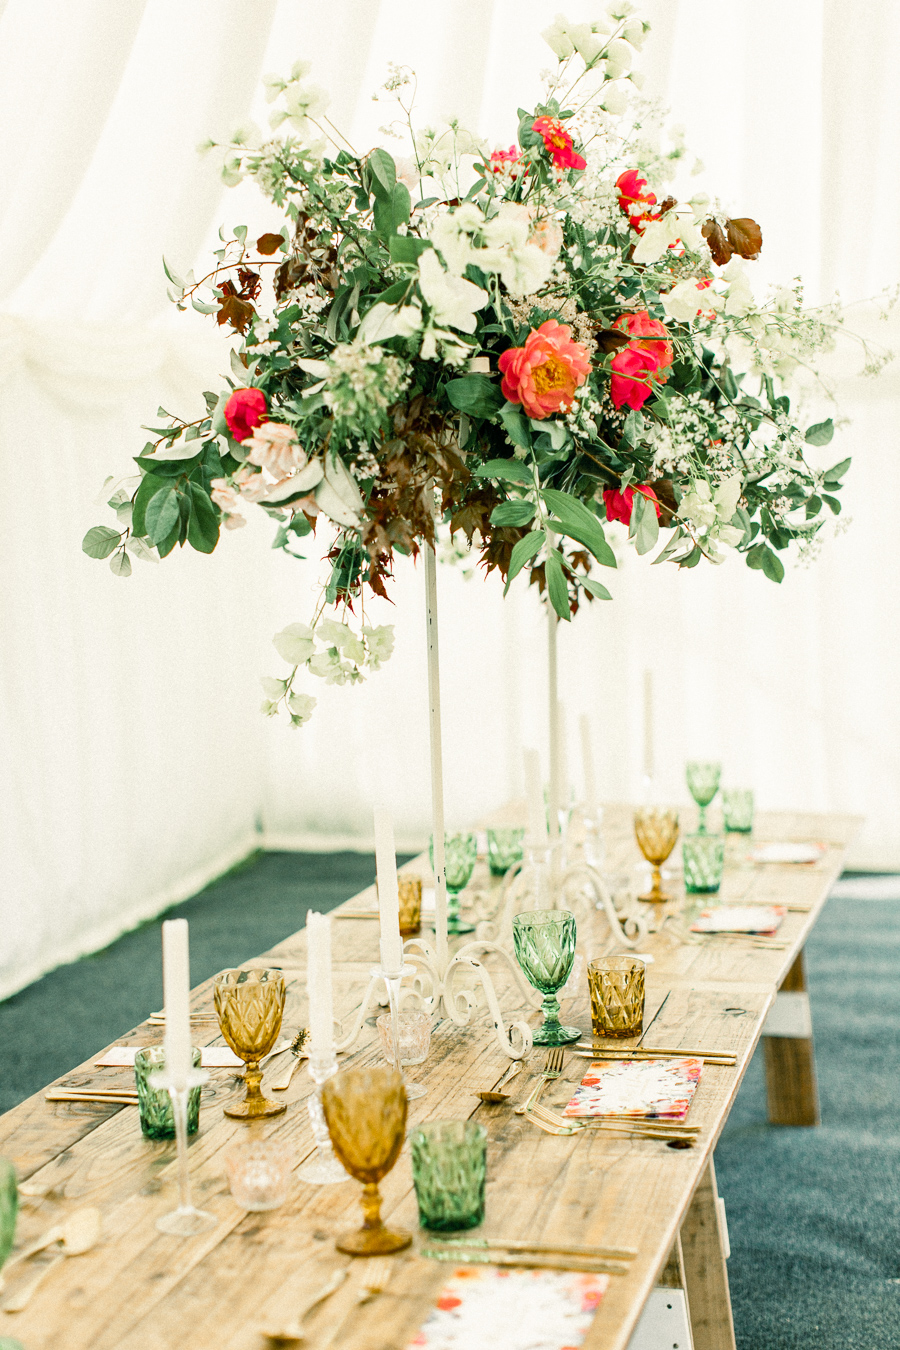 Jordans Courtyard rustic wedding styling ideas with images by Liz Baker Photography (16)